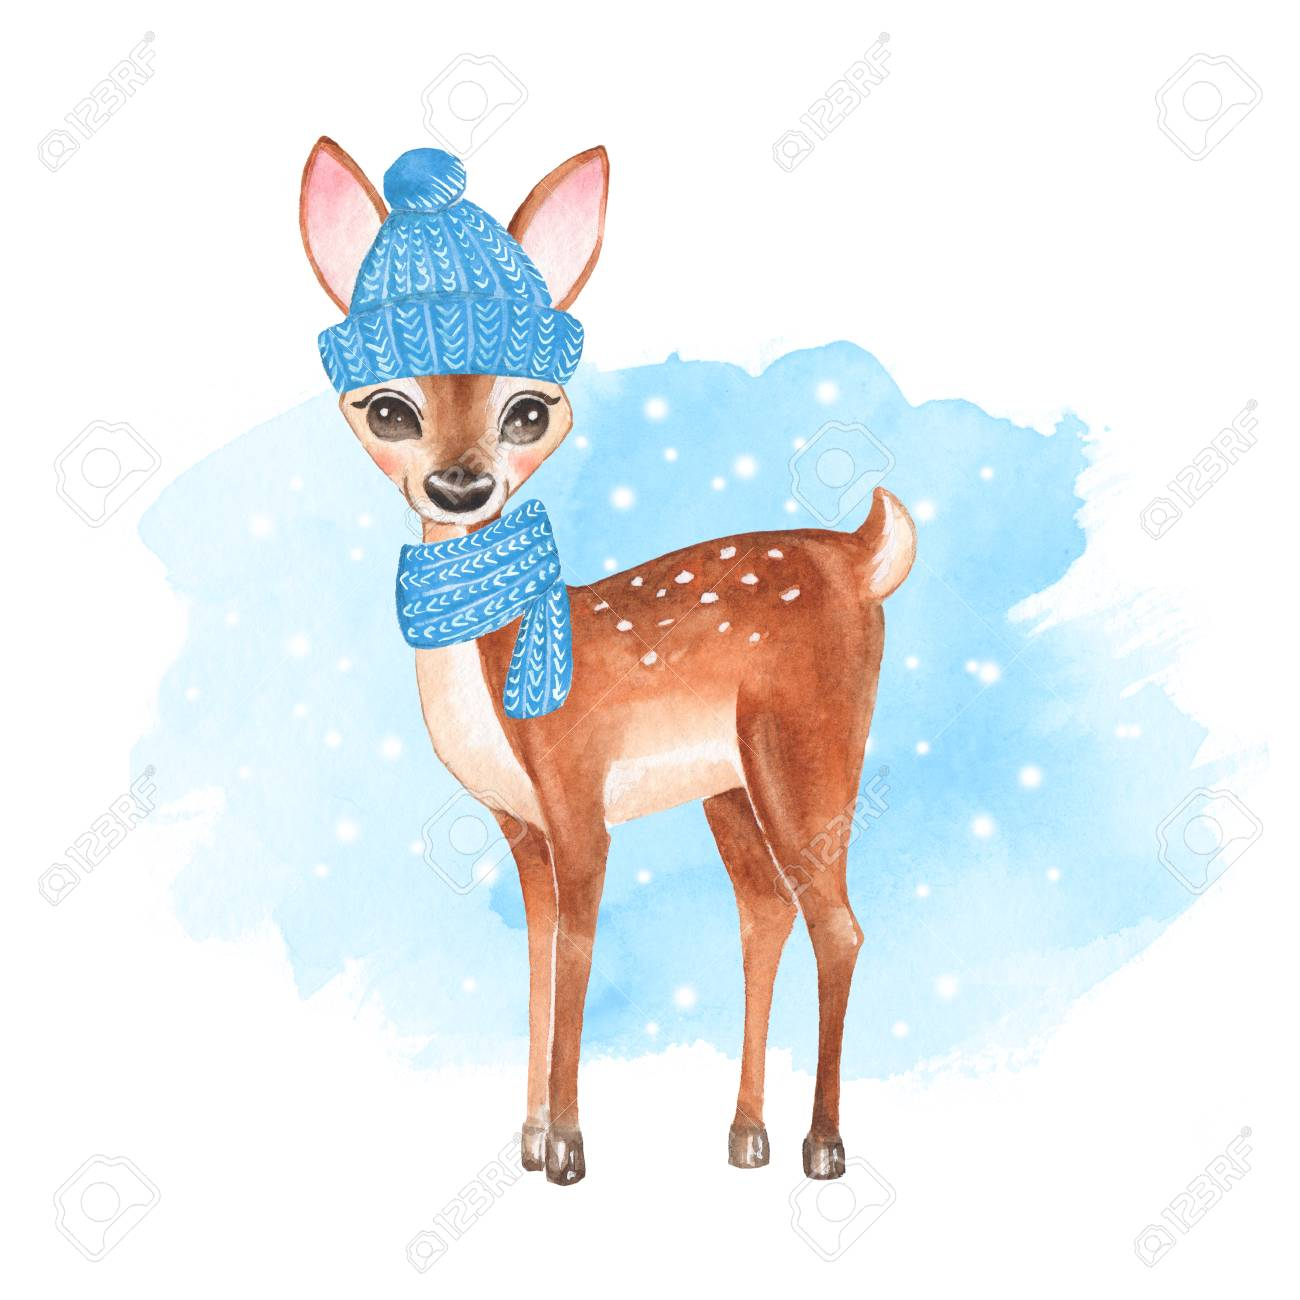 Baby Deer. Knitted cap and scarf. Hand drawn cute fawn - 87600786